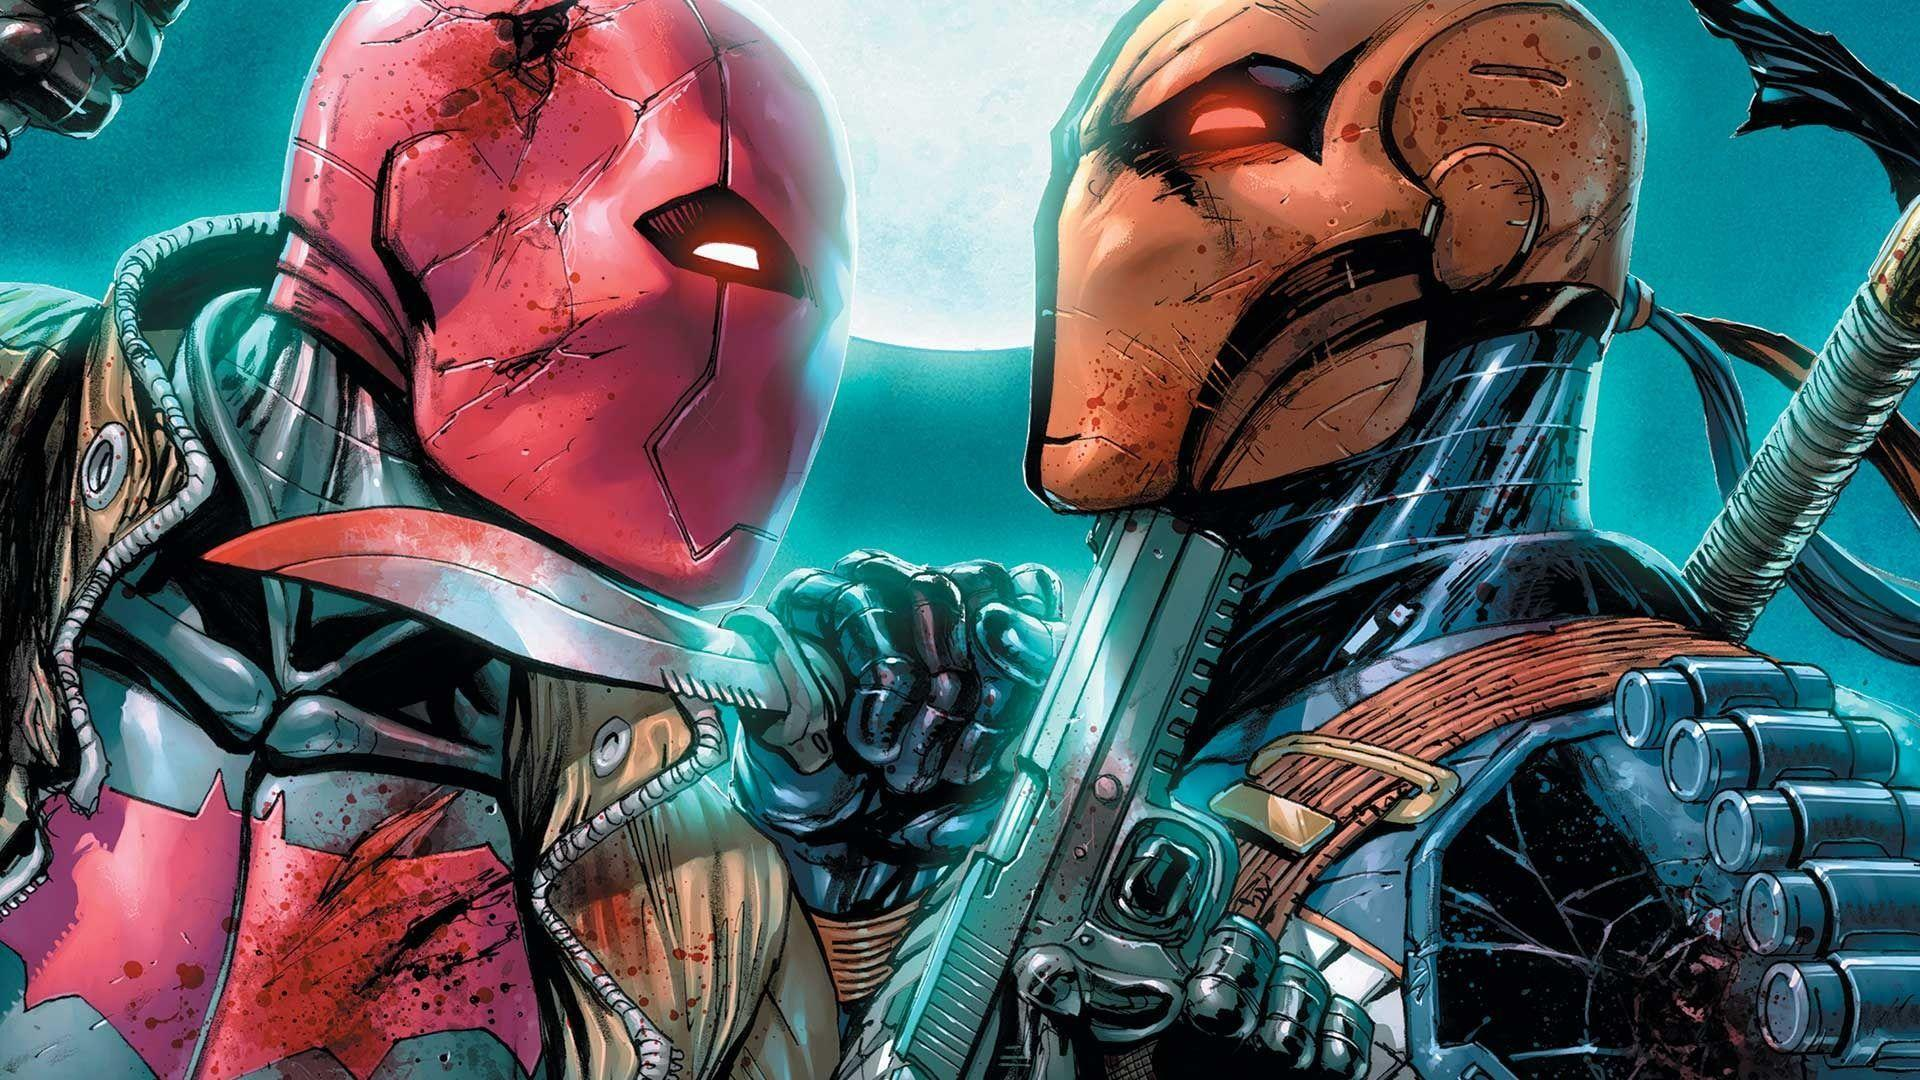 New 52 Deathstroke, Red Hood vs Old Man Logan, X-23 - Battles ...